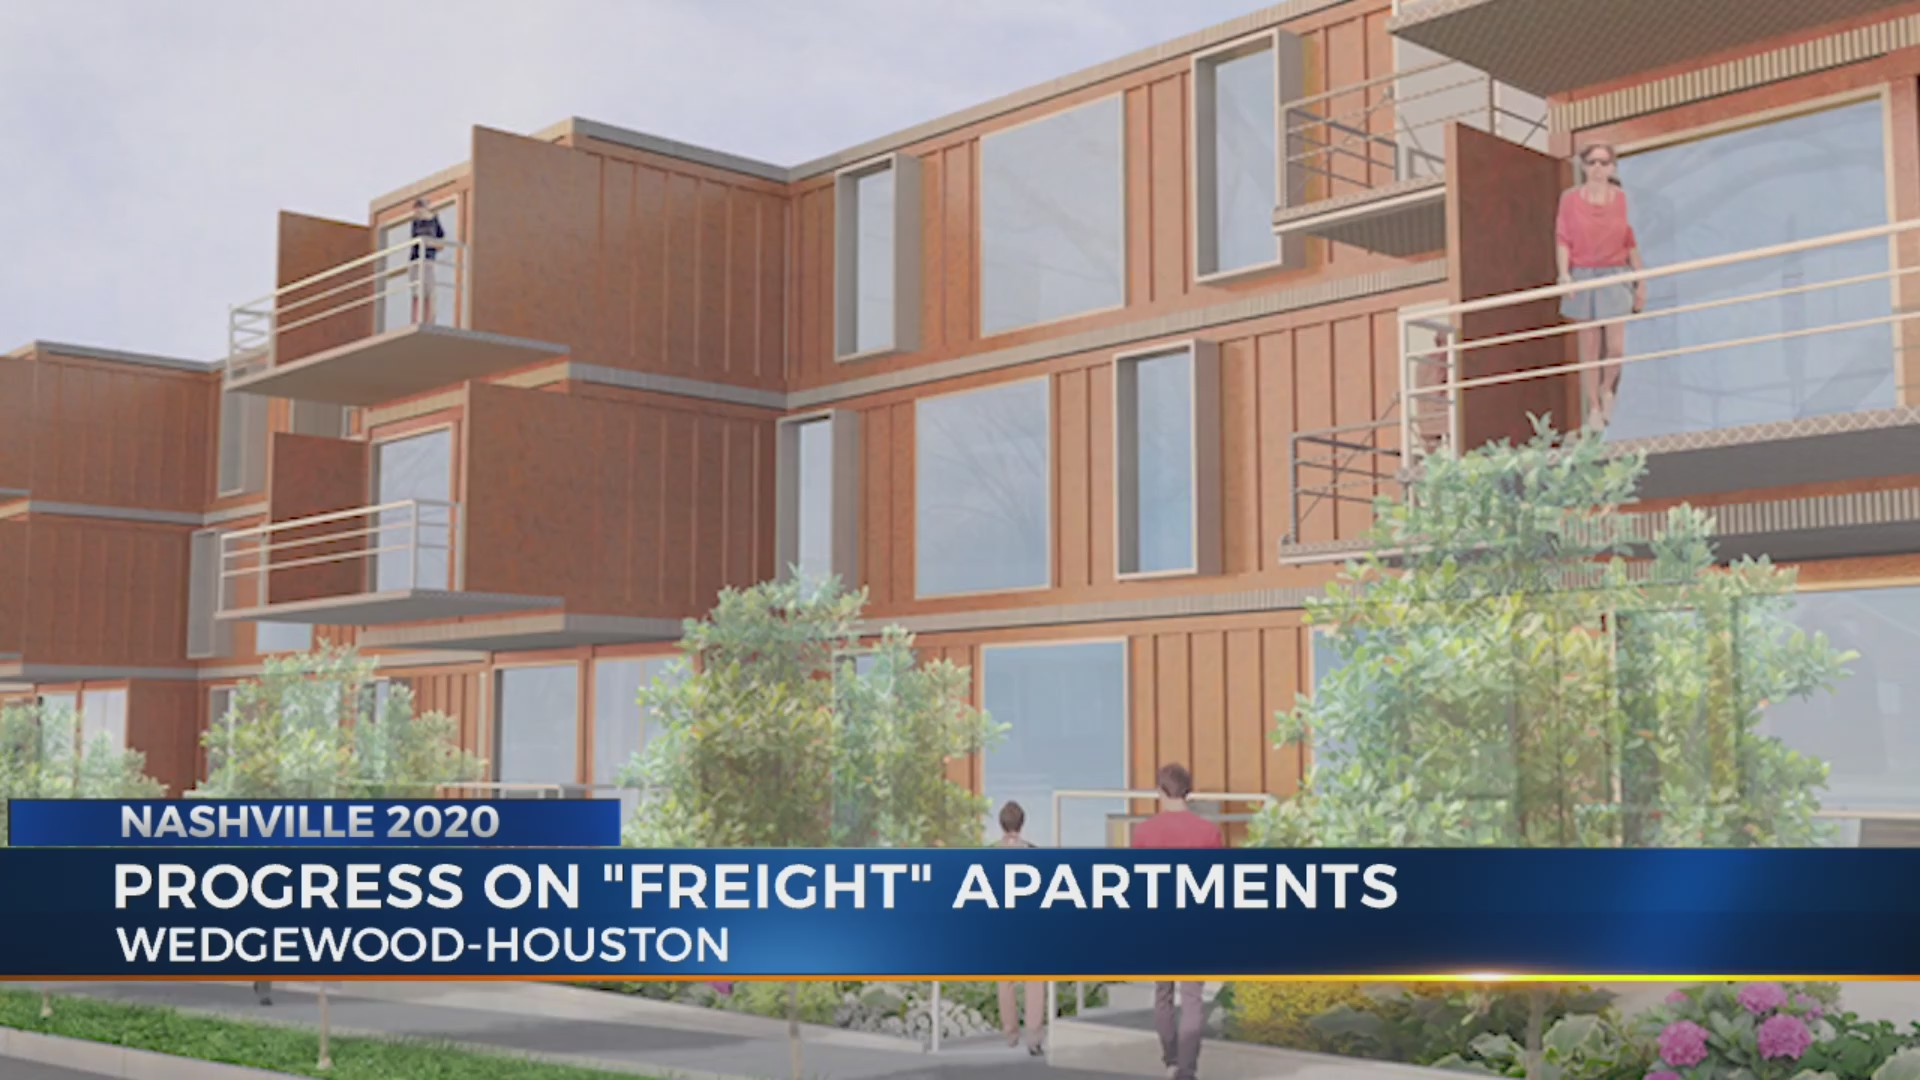 Shipping Container Apartments Closer To Completion In Wedgewood Houston Wkrn News 2